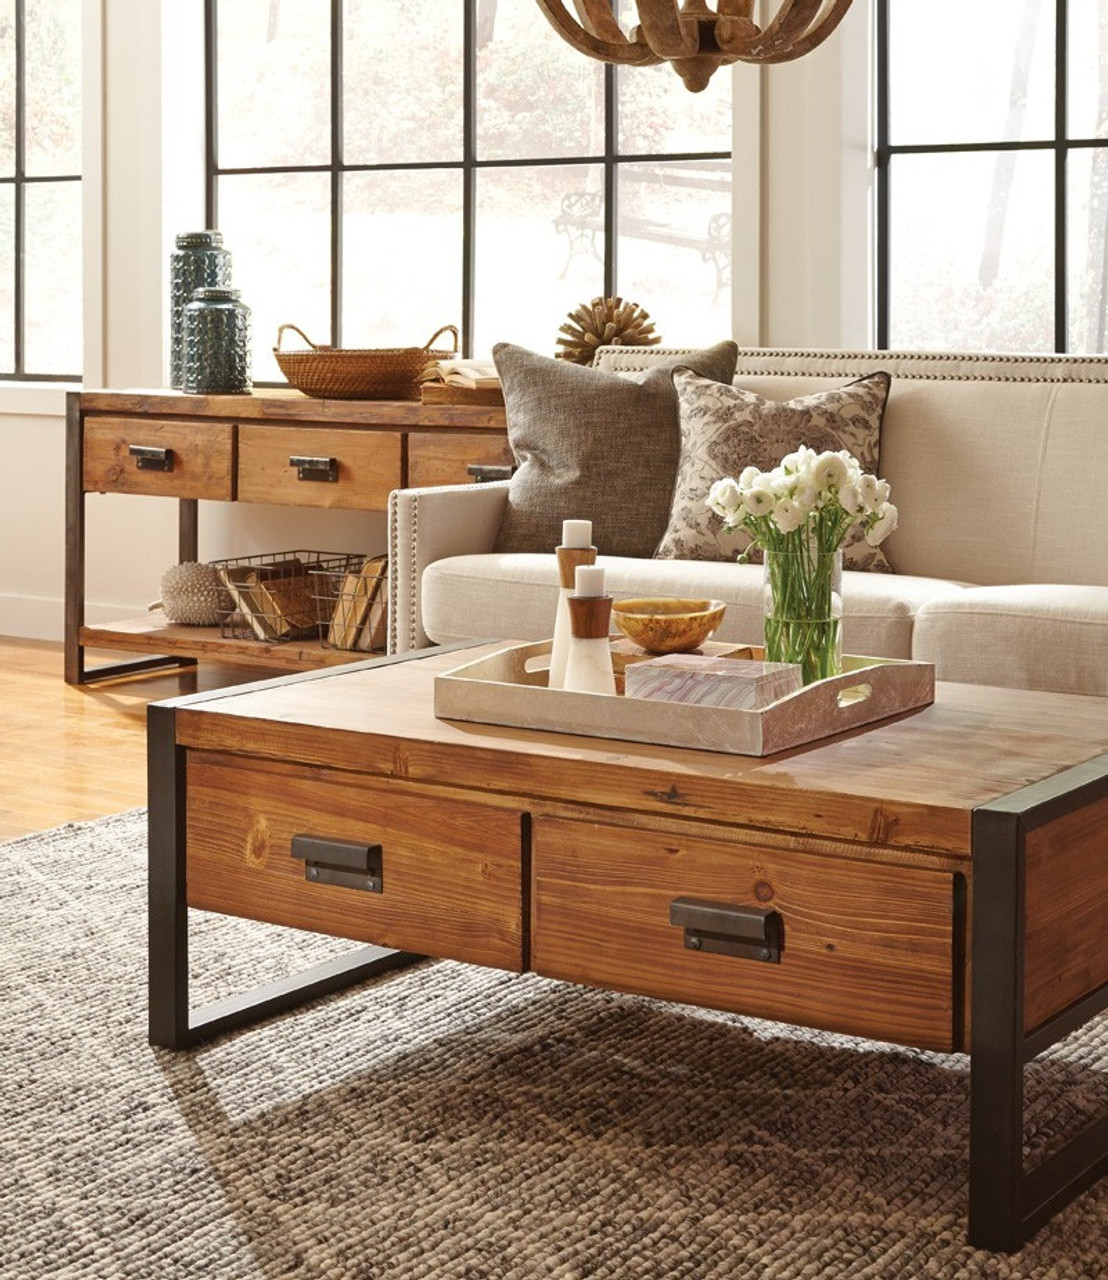 - Rustic Industrial Coffee Table With Drawers Zin Home